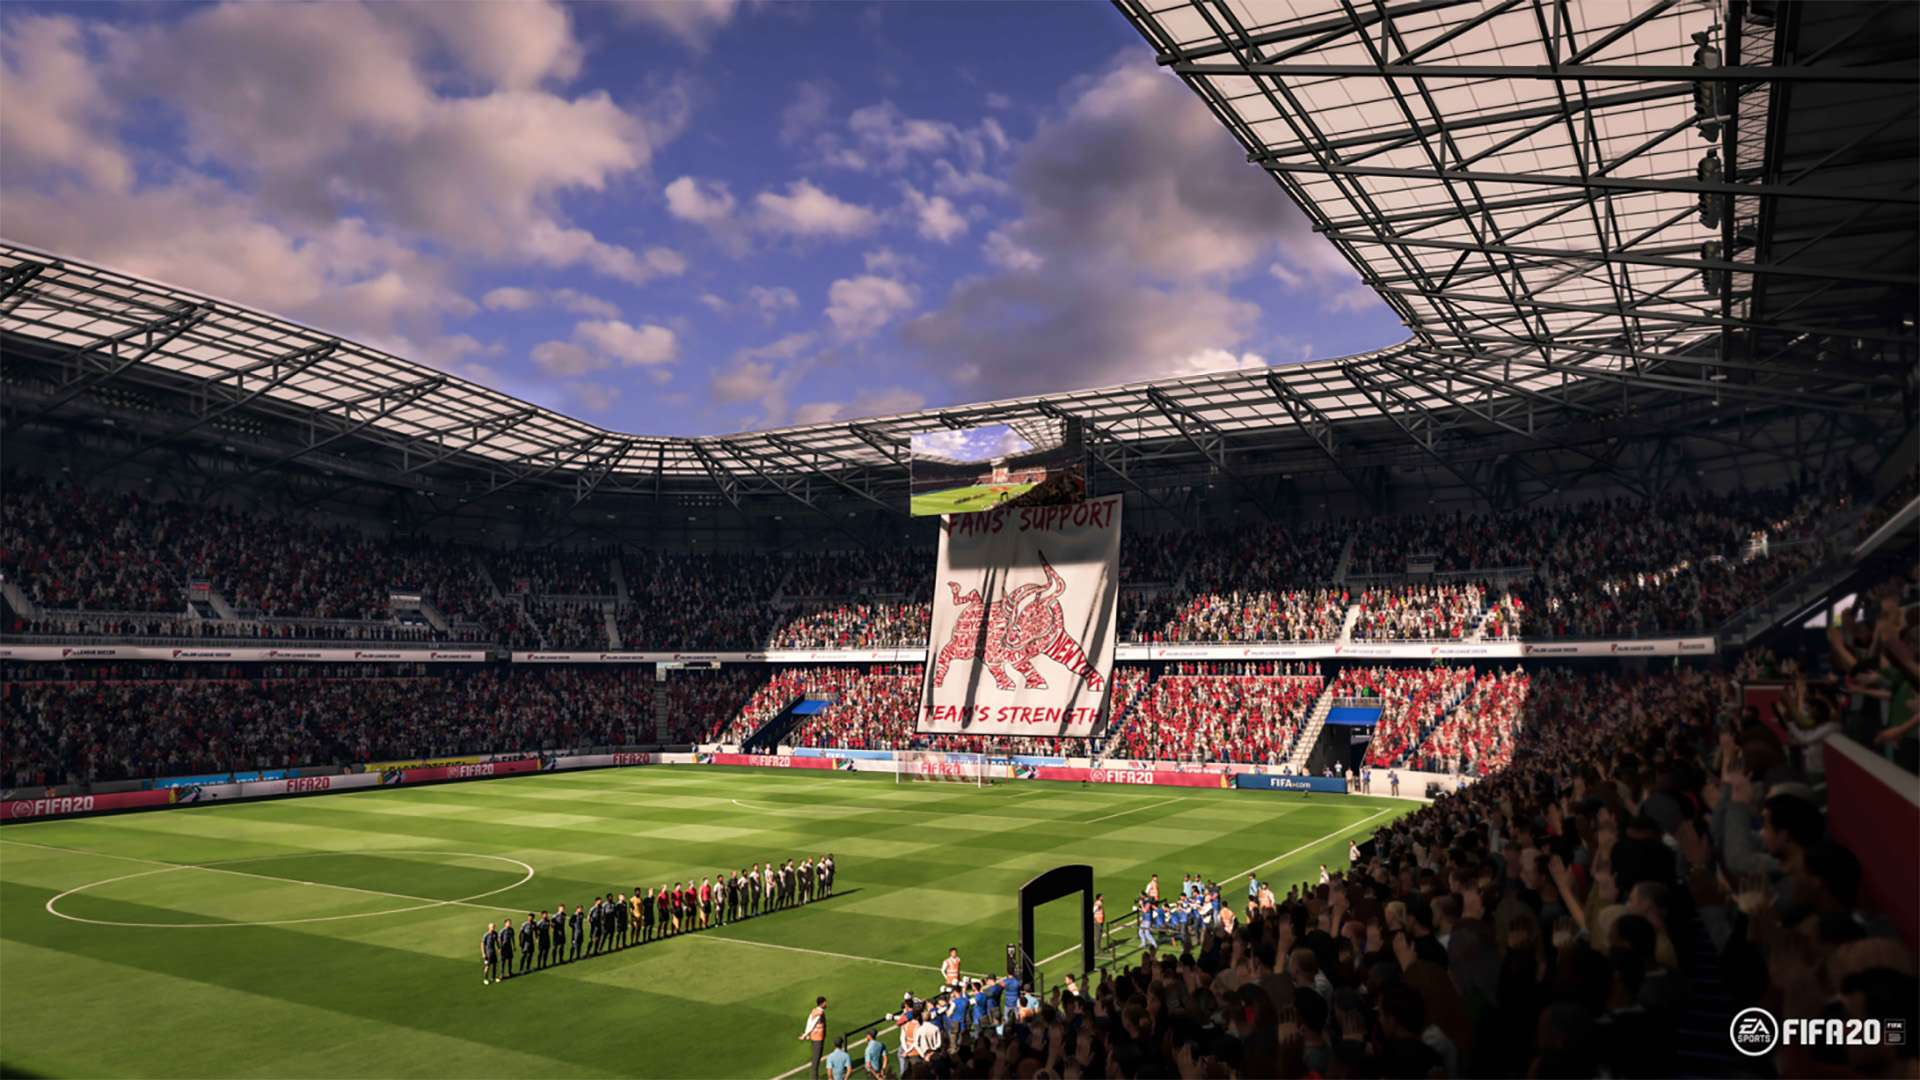 Fifa 20 Stadium List All 119 Grounds On Xbox One And Ps4 Versions Of New Game Goal Com